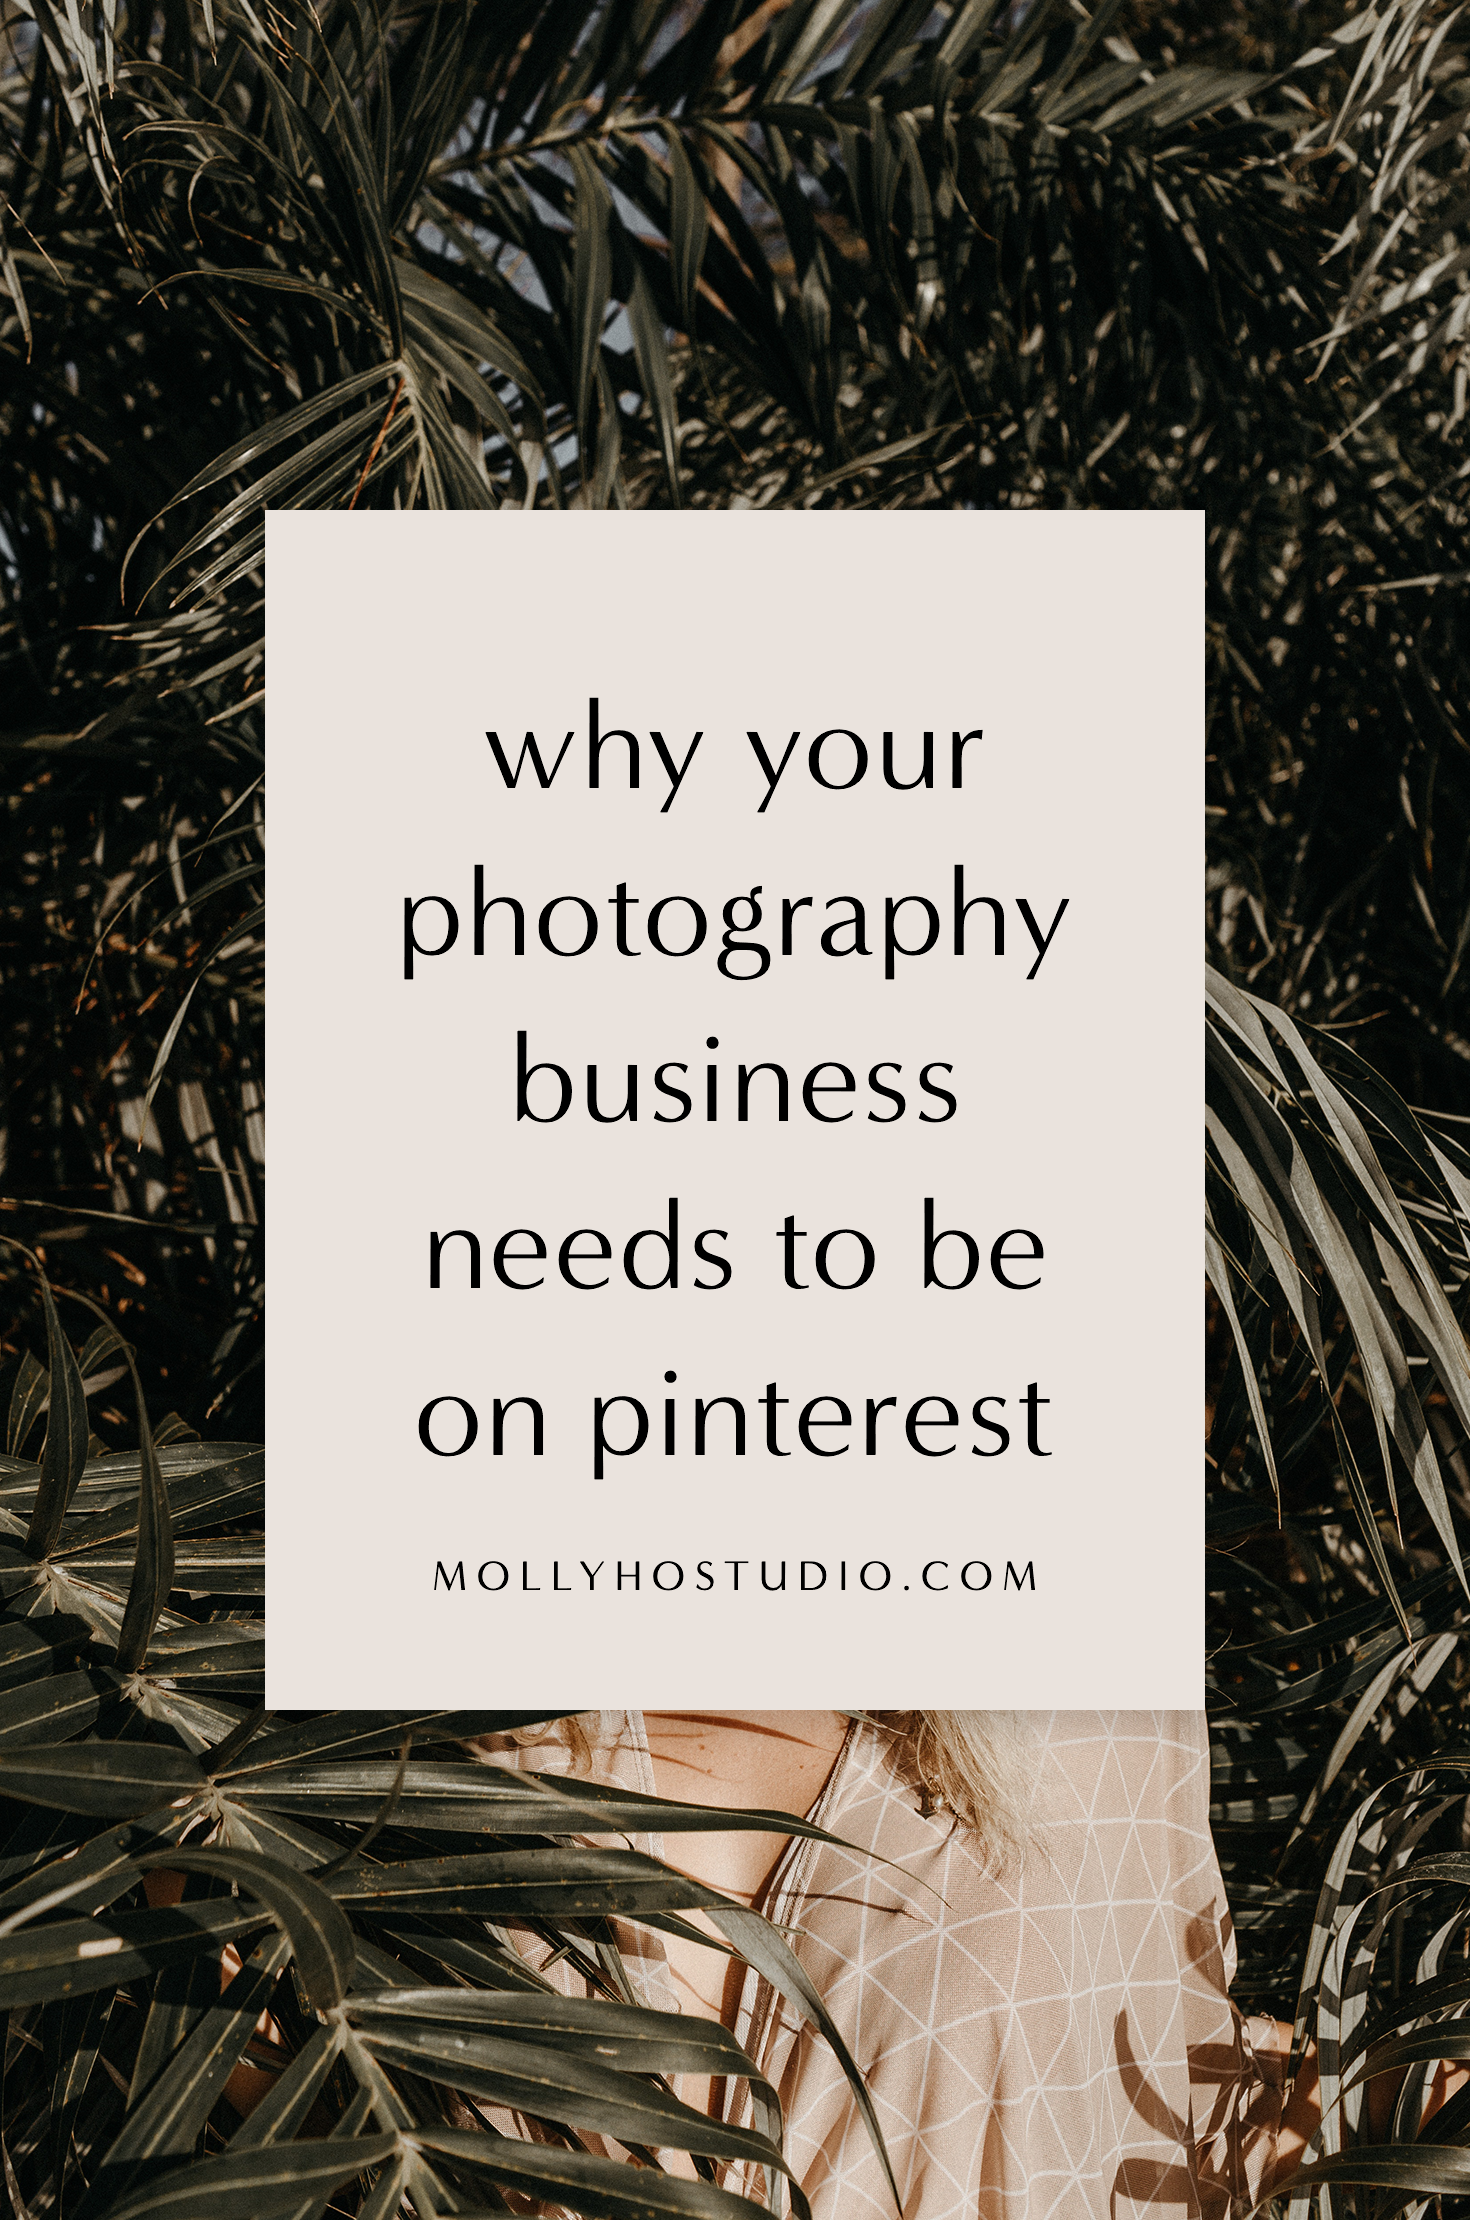 4 Reasons Why Your Photography Business Needs A Pinterest Page | Pinterest for Photographers | Pinterest Templates | Branding and Marketing Tips for Photographers | Photography Business Plan | Building A Personal Brand | Growing Your Photography Business on Pinterest | How To Set Yourself Apart In An Oversaturated Market | Getting More Clients | How To Book More Photography Clients | Molly Ho Studio